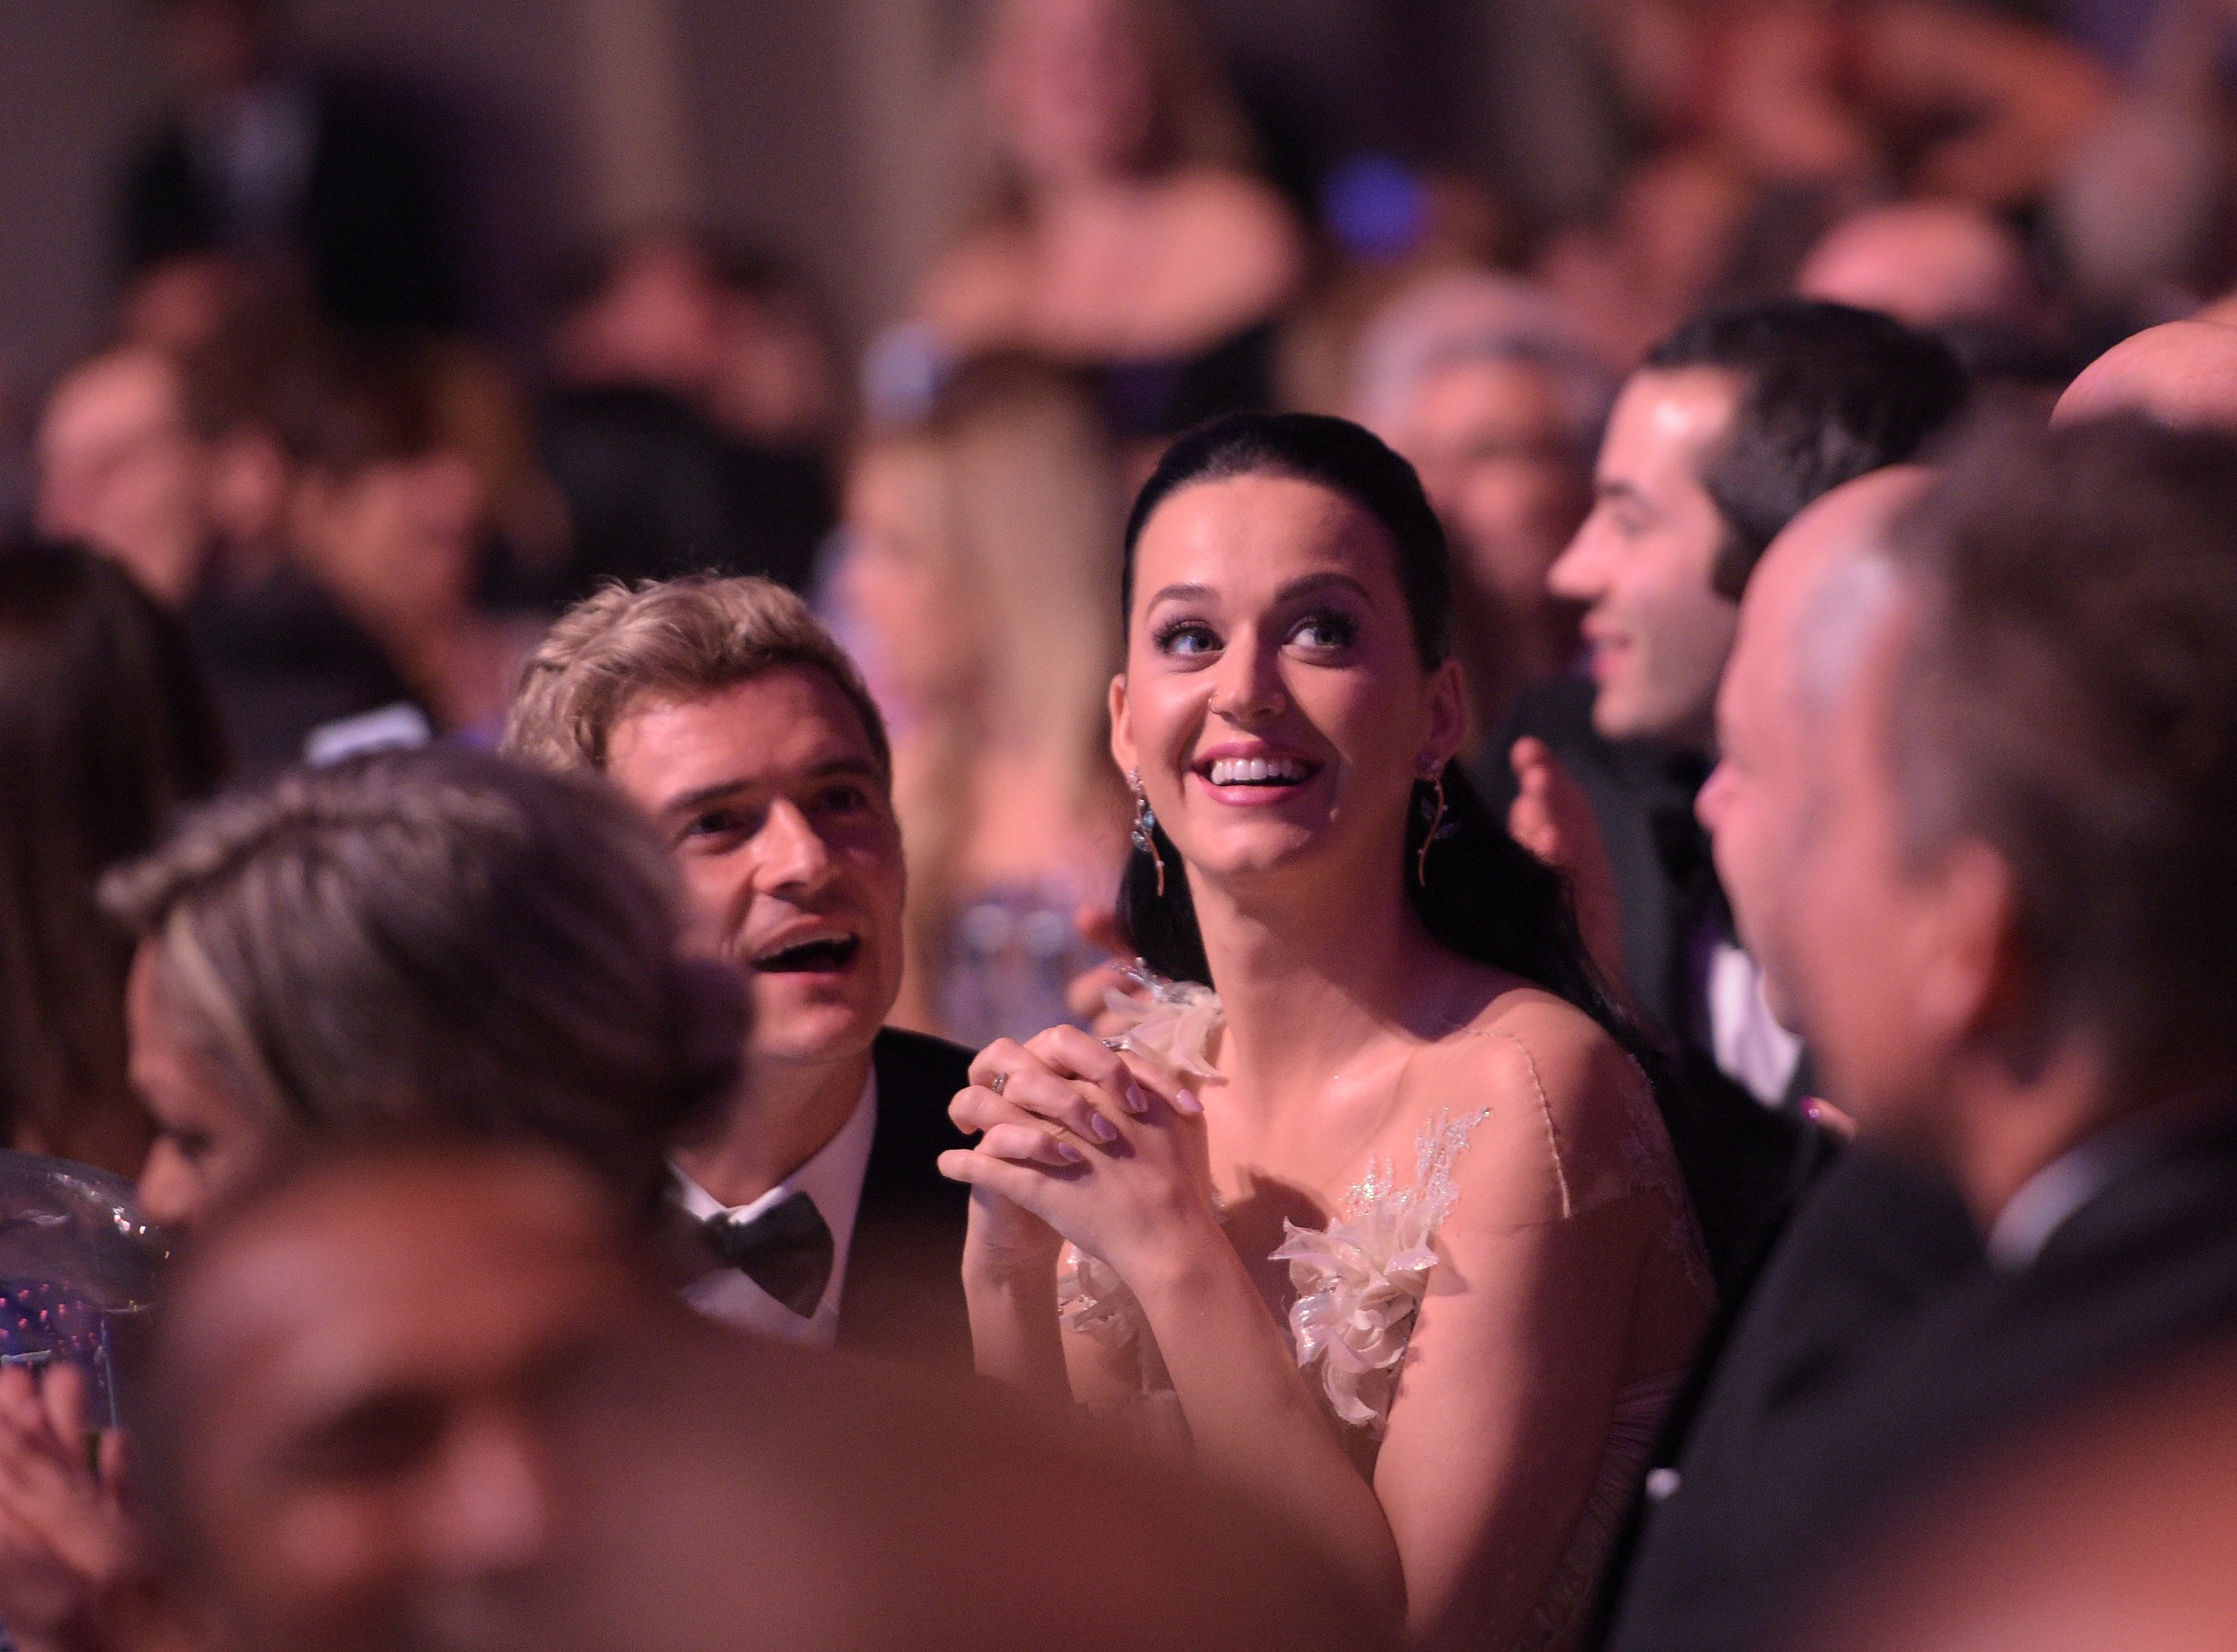 Katy Perry's net worth was already on the way up before she met Orlando Bloom.